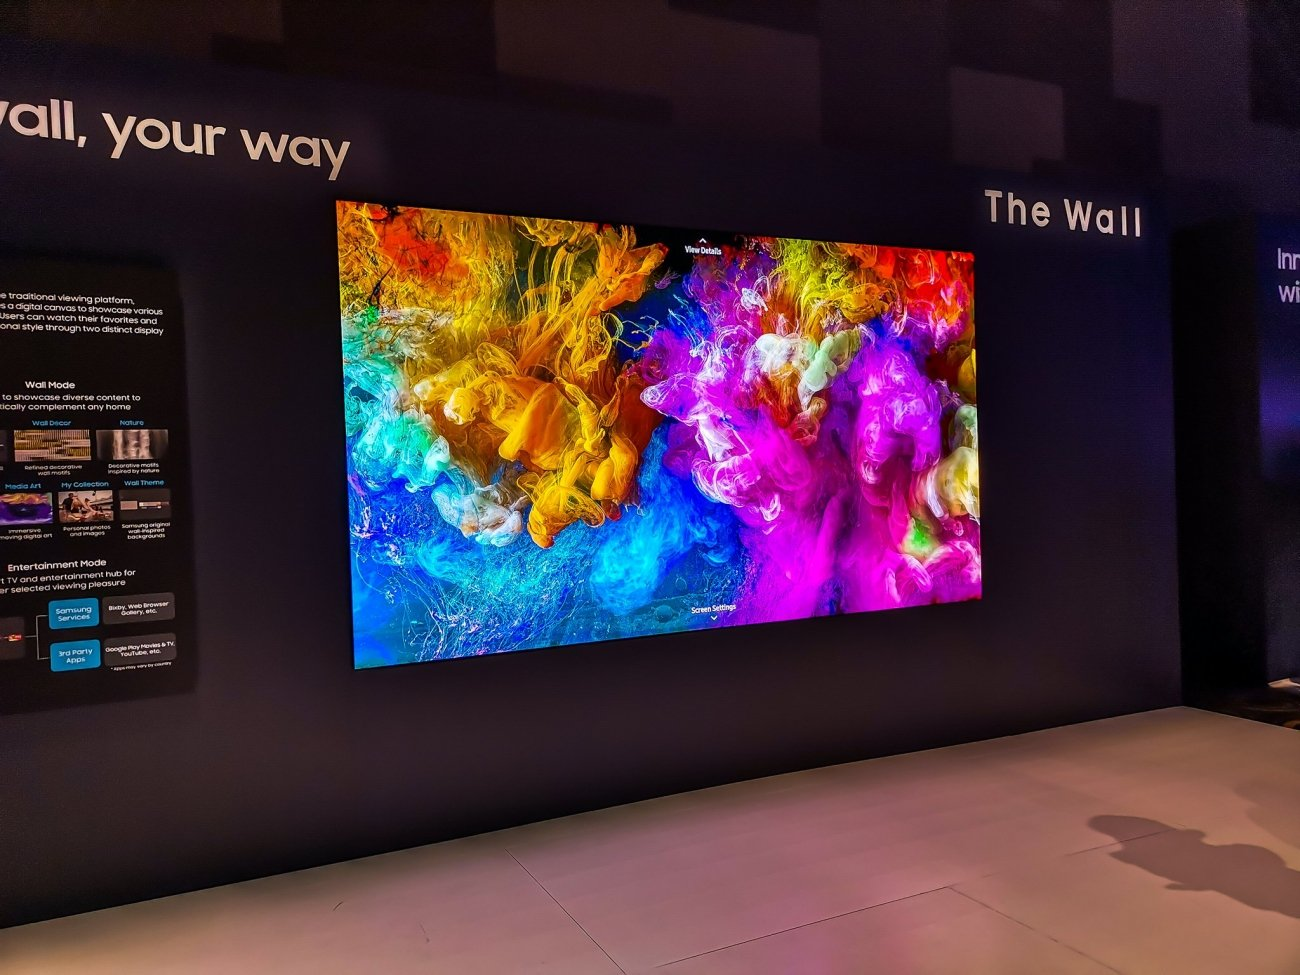 Samsung's new Wall TV unveiled: 219 inches of MicroLED tech